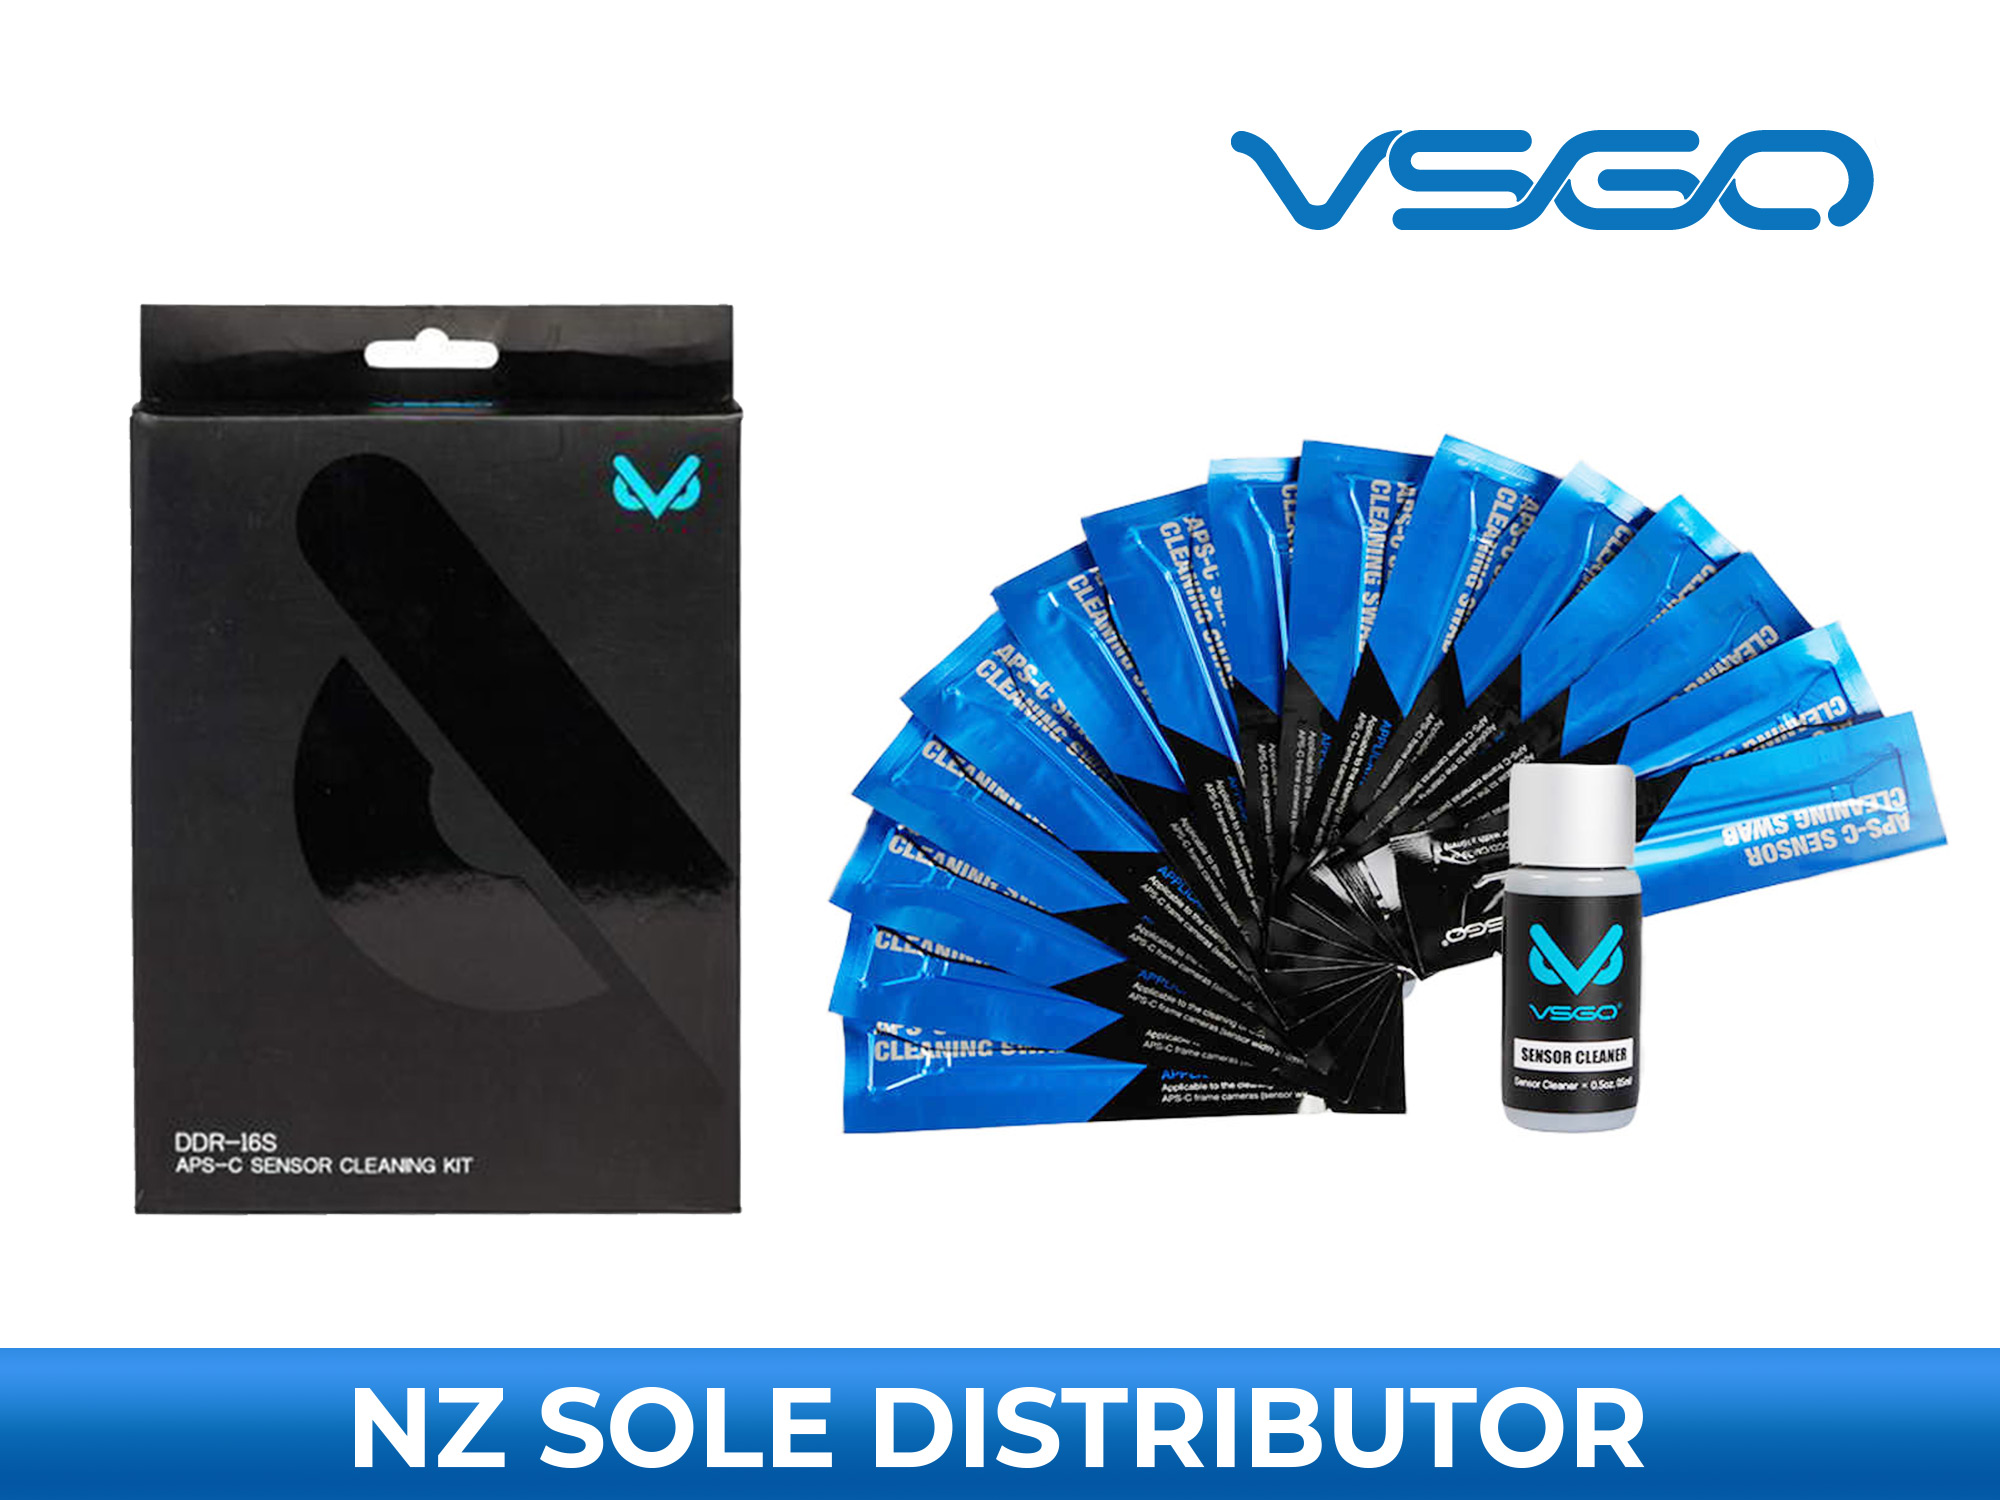 Sensor Cleaning Swab Kit - APS-C - VSGO DDR-16s